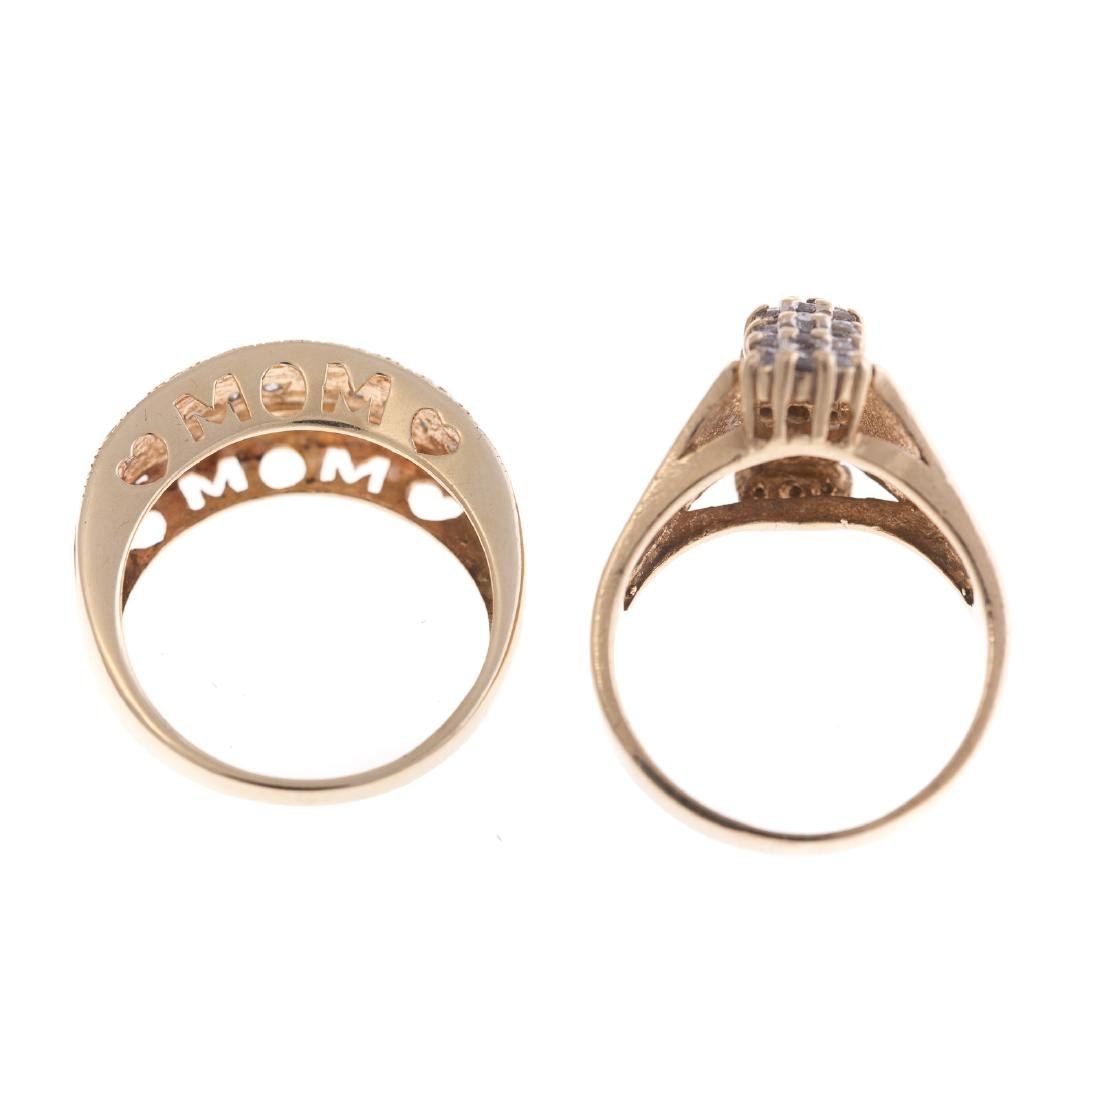 Two Lady's Diamond Rings in 10K Gold - 4